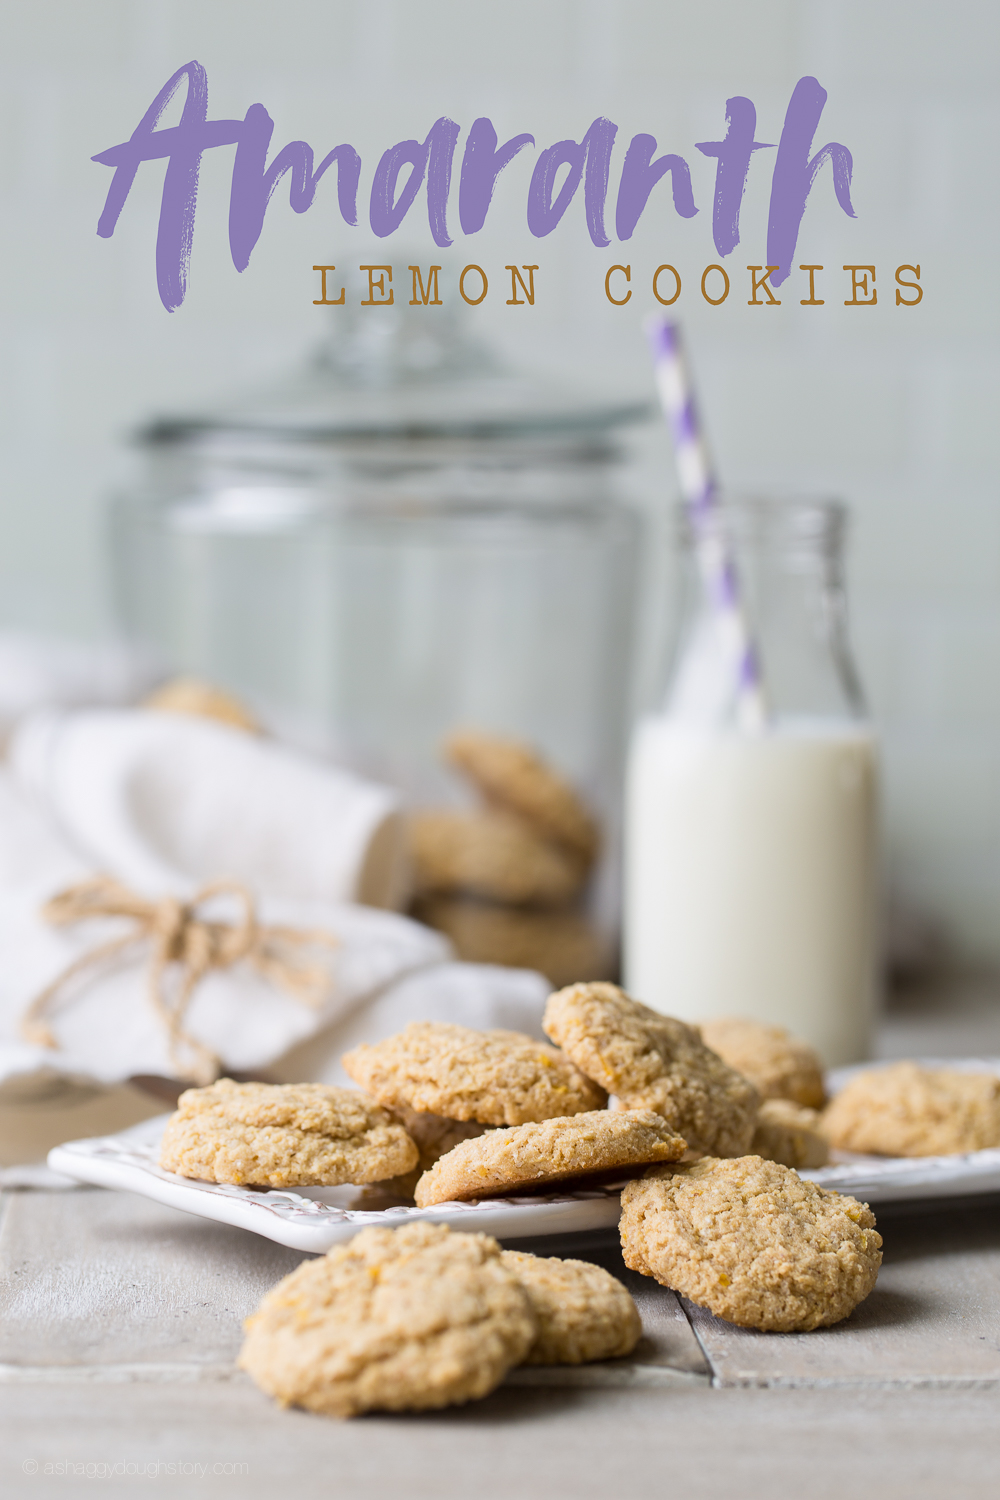 amaranth_lemon_cookies-1.jpg